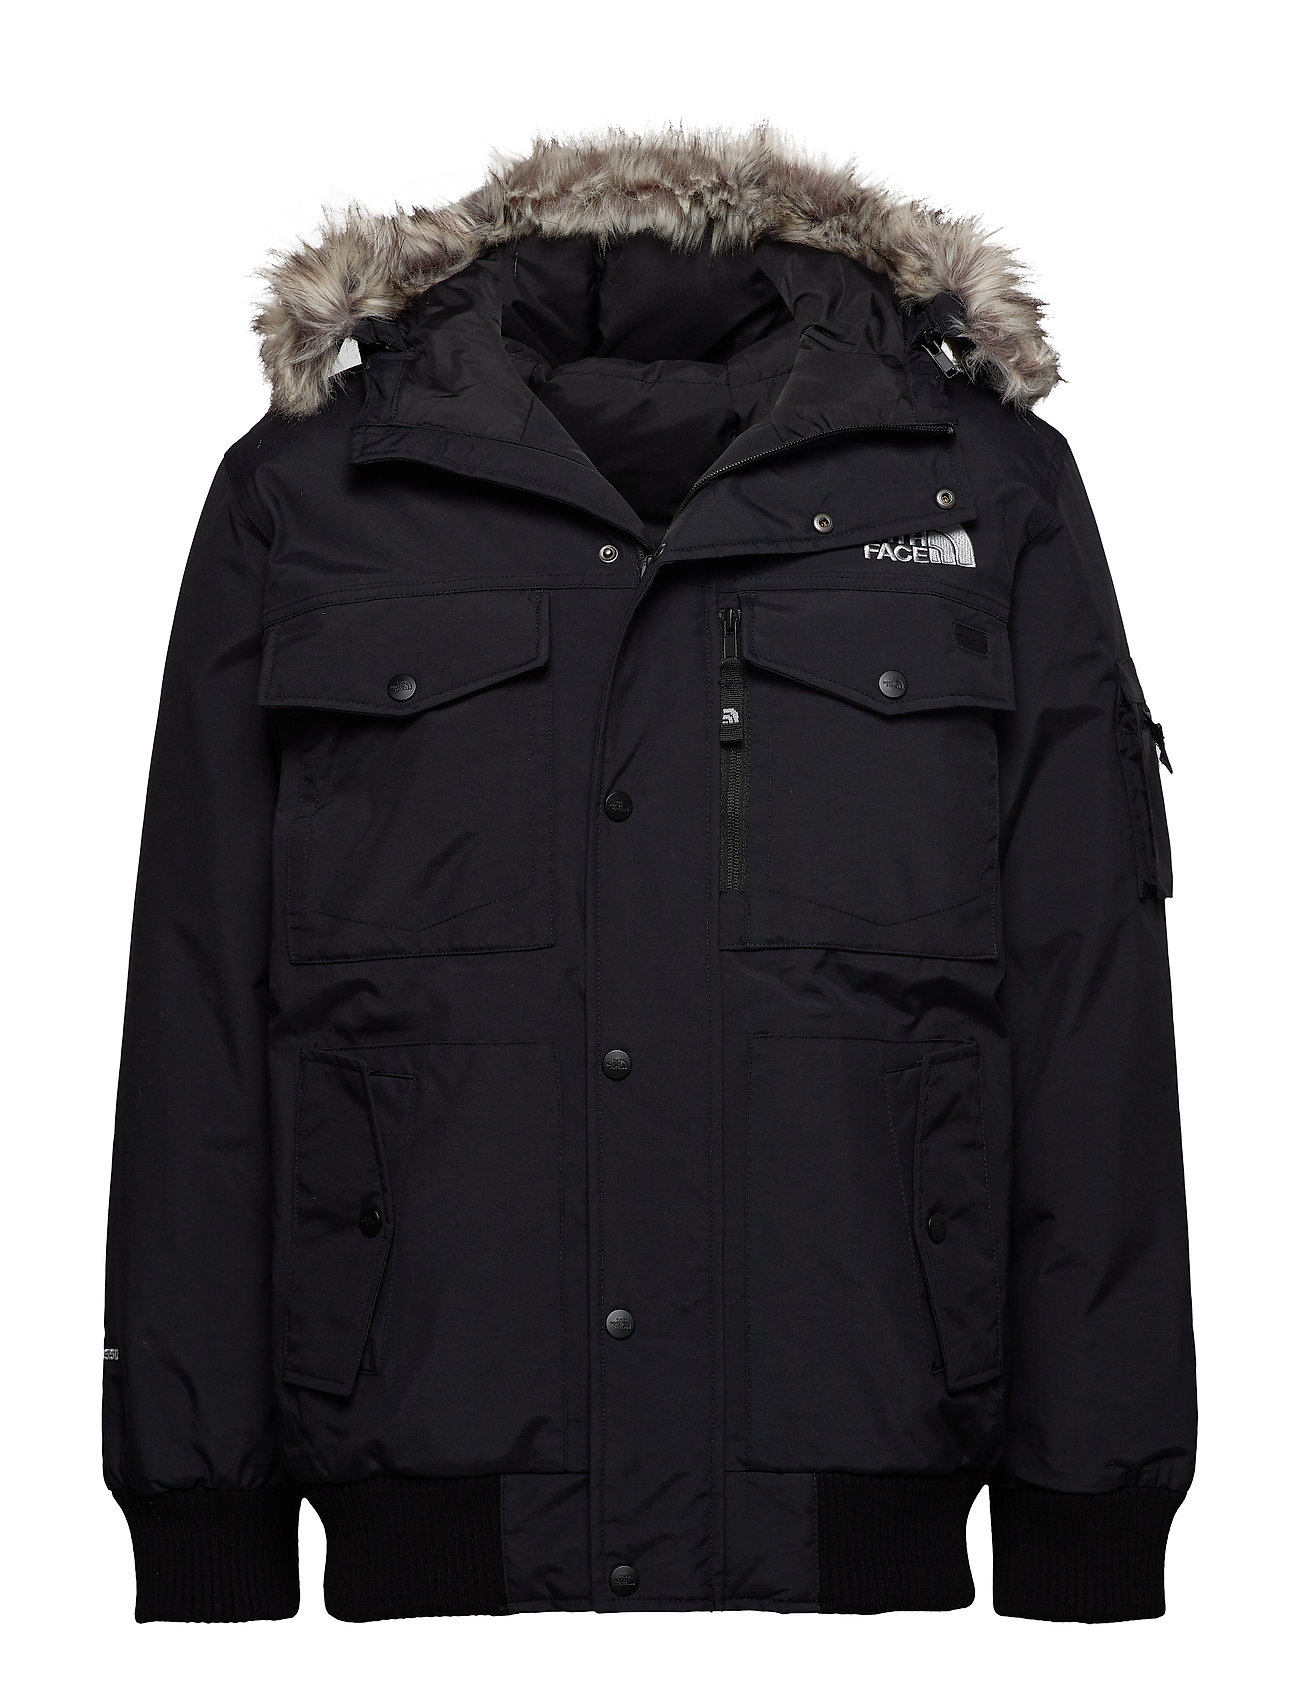 The North Face M GOTHAM JACKET - TNF BL/HI RI GR